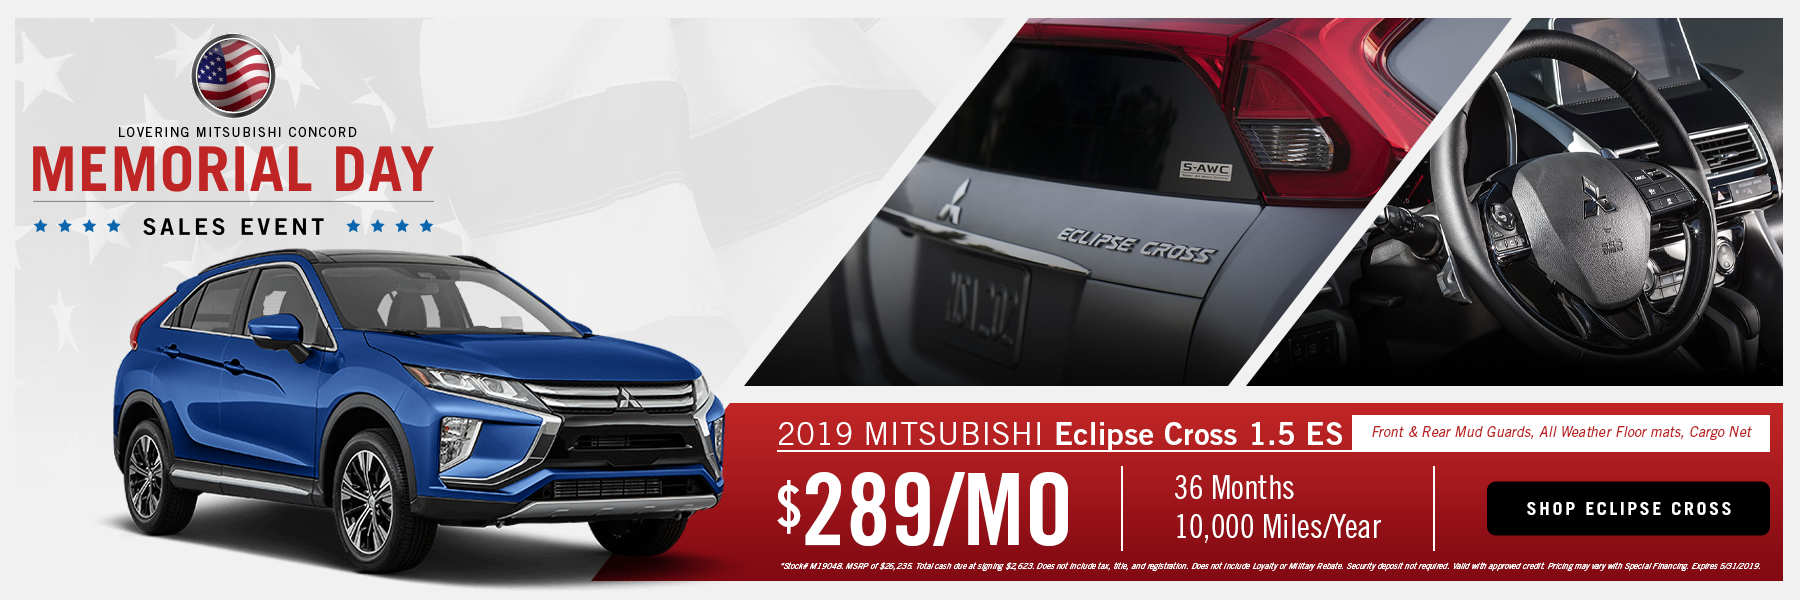 Memorial Day Eclipse Lease Offer